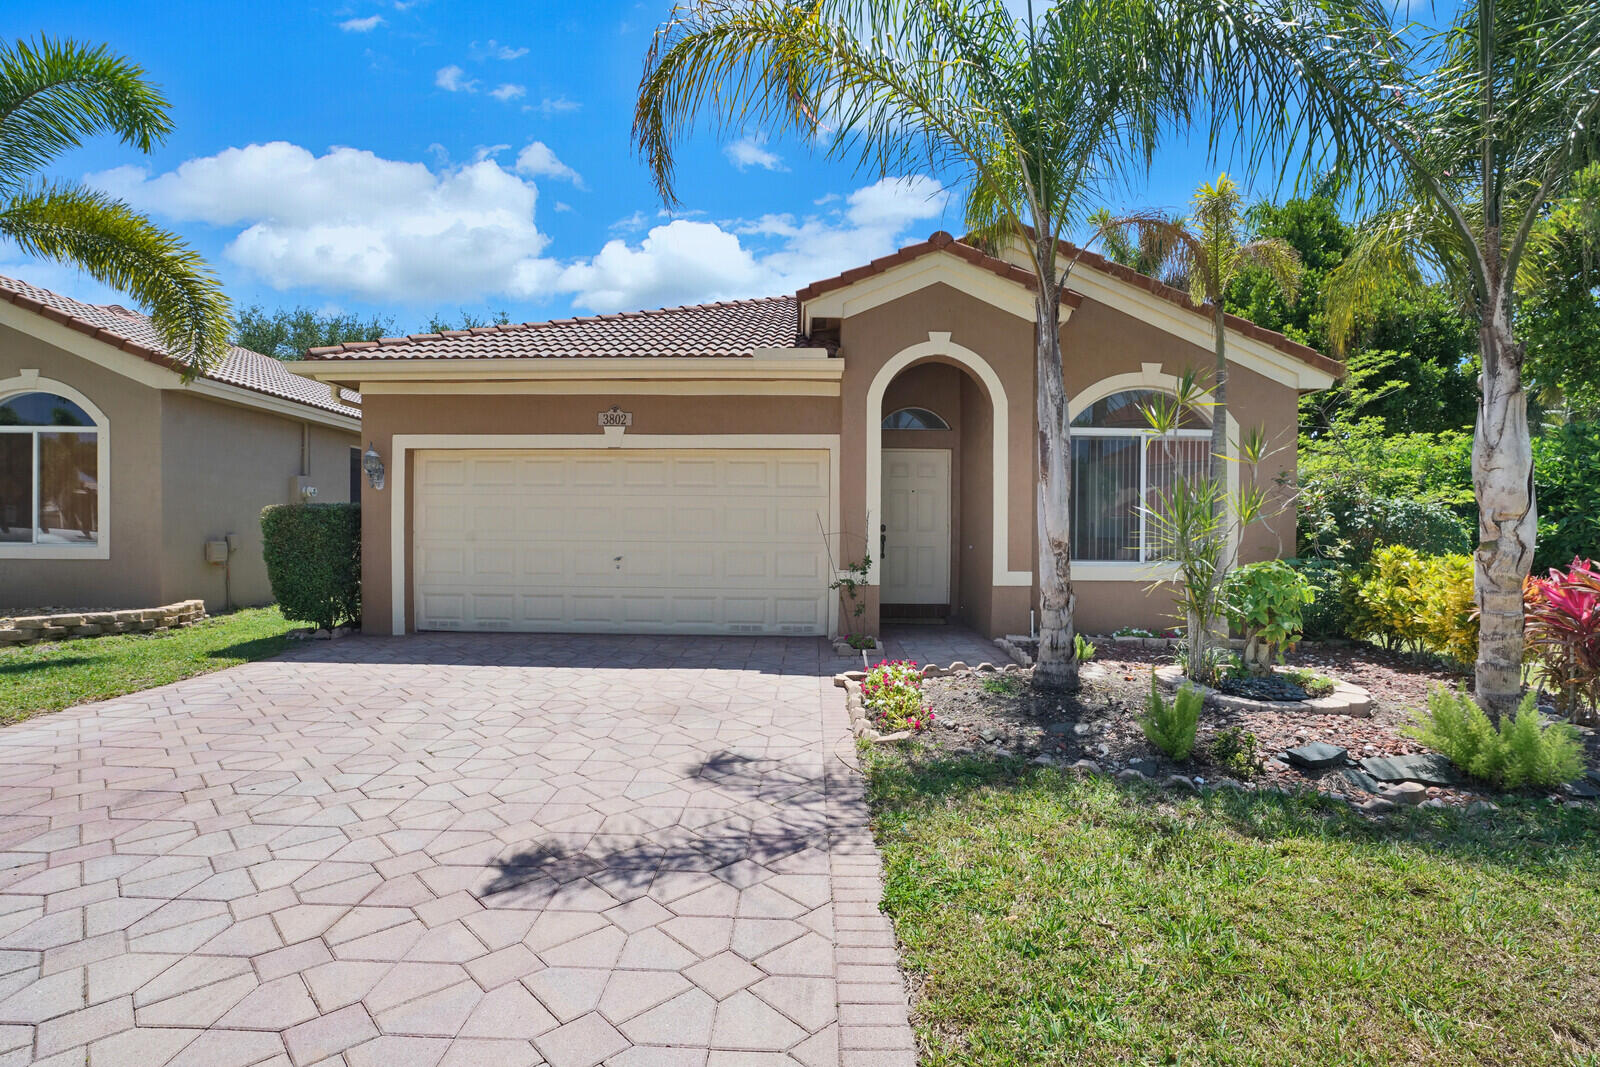 Home for sale in Banyan Trails Coconut Creek Florida